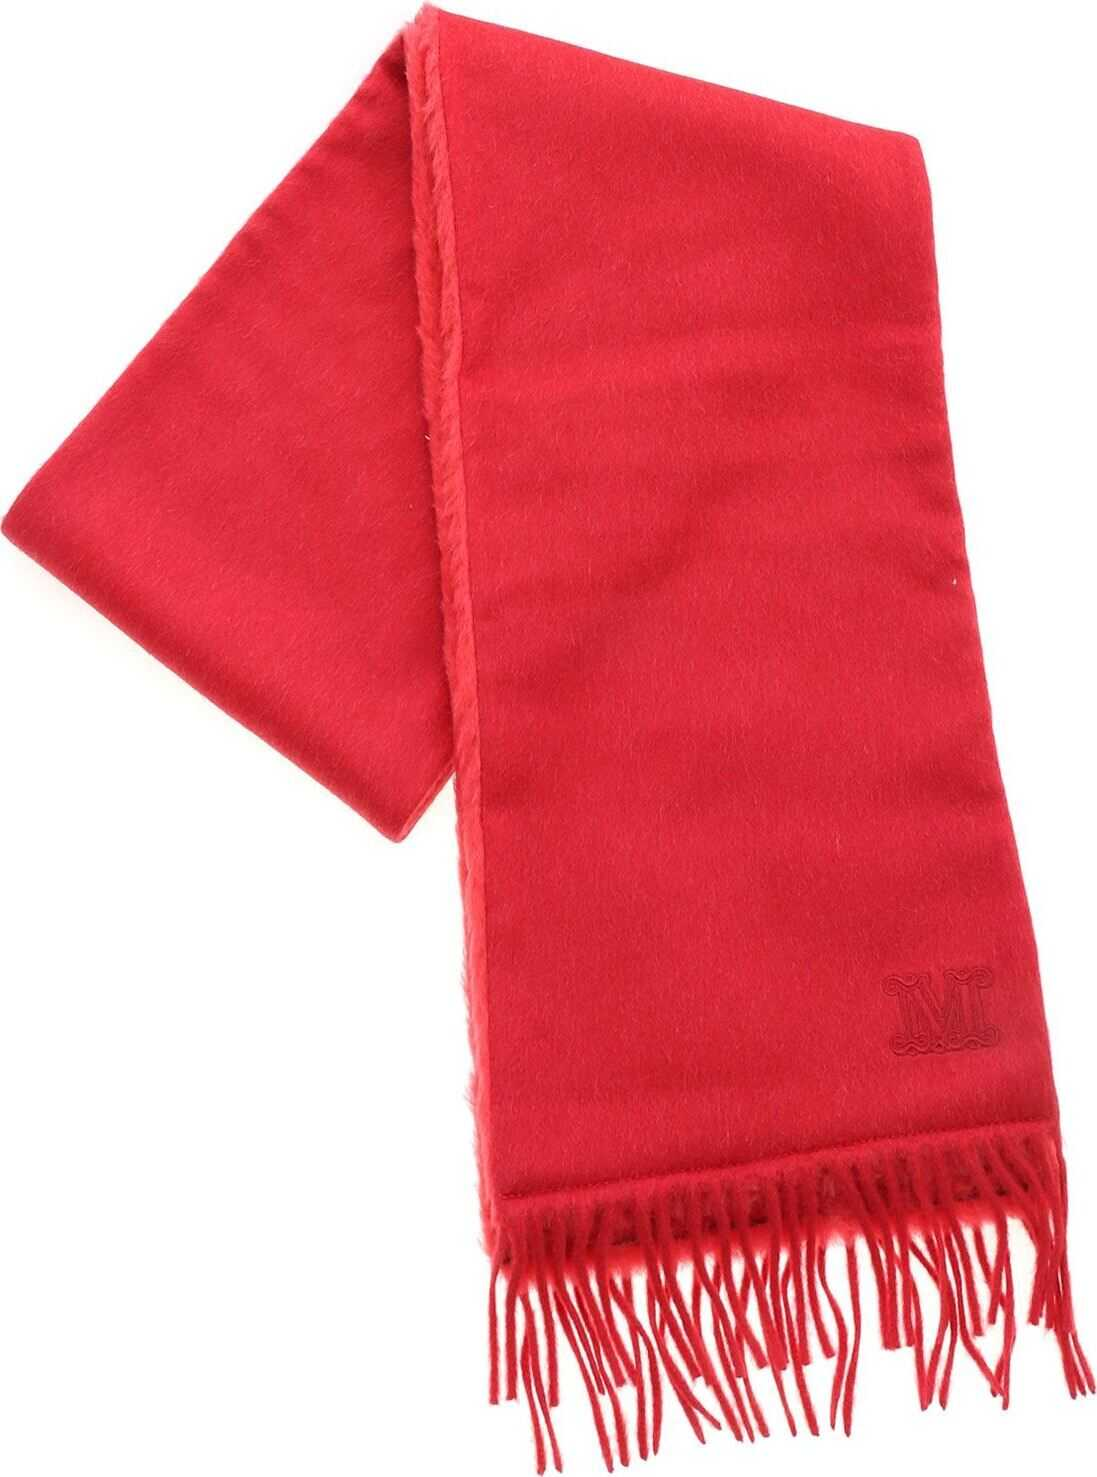 Allegra Scarf In Red thumbnail